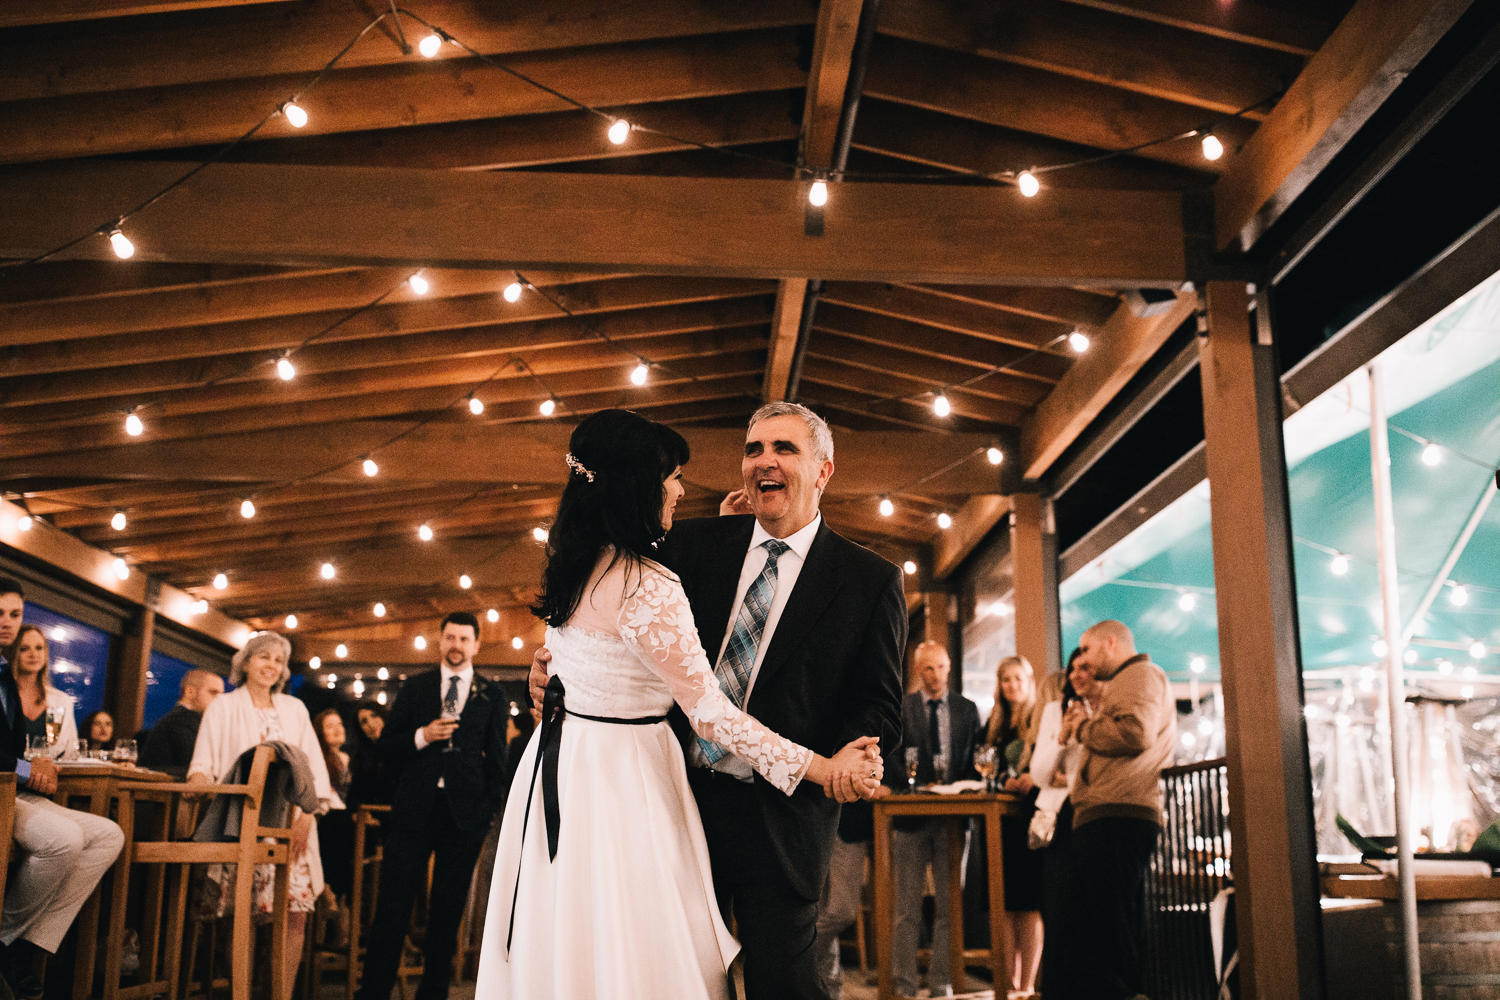 2019_05_ 182019.05.19 Lisa + Eddie South Bay Wedding Blog Photos Edited For Web 0149.jpg